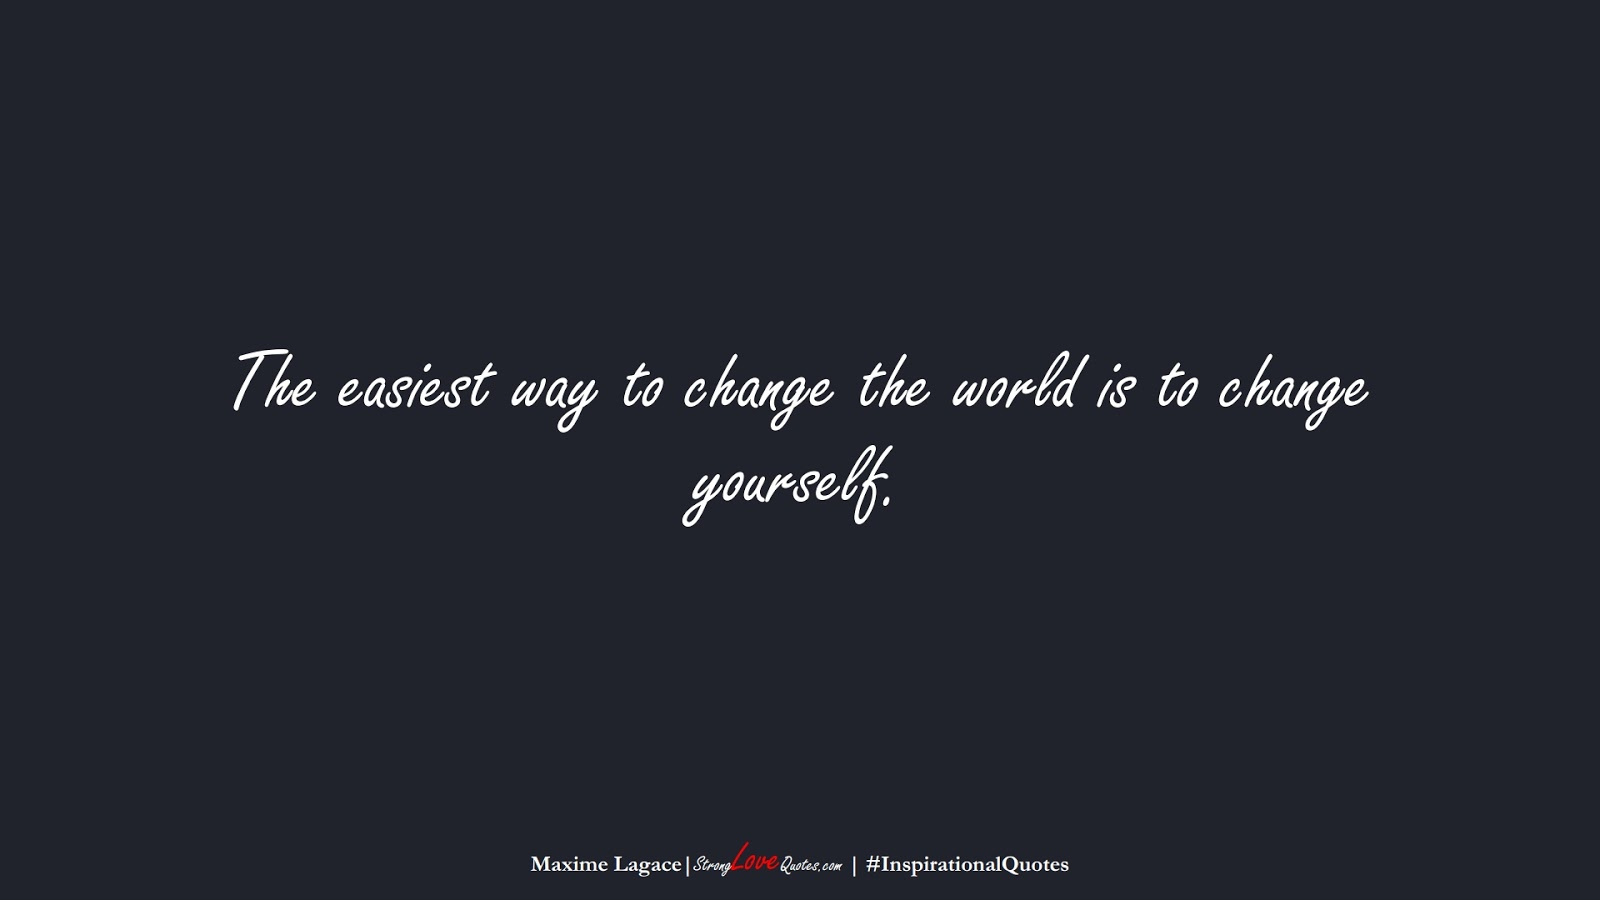 The easiest way to change the world is to change yourself. (Maxime Lagace);  #InspirationalQuotes